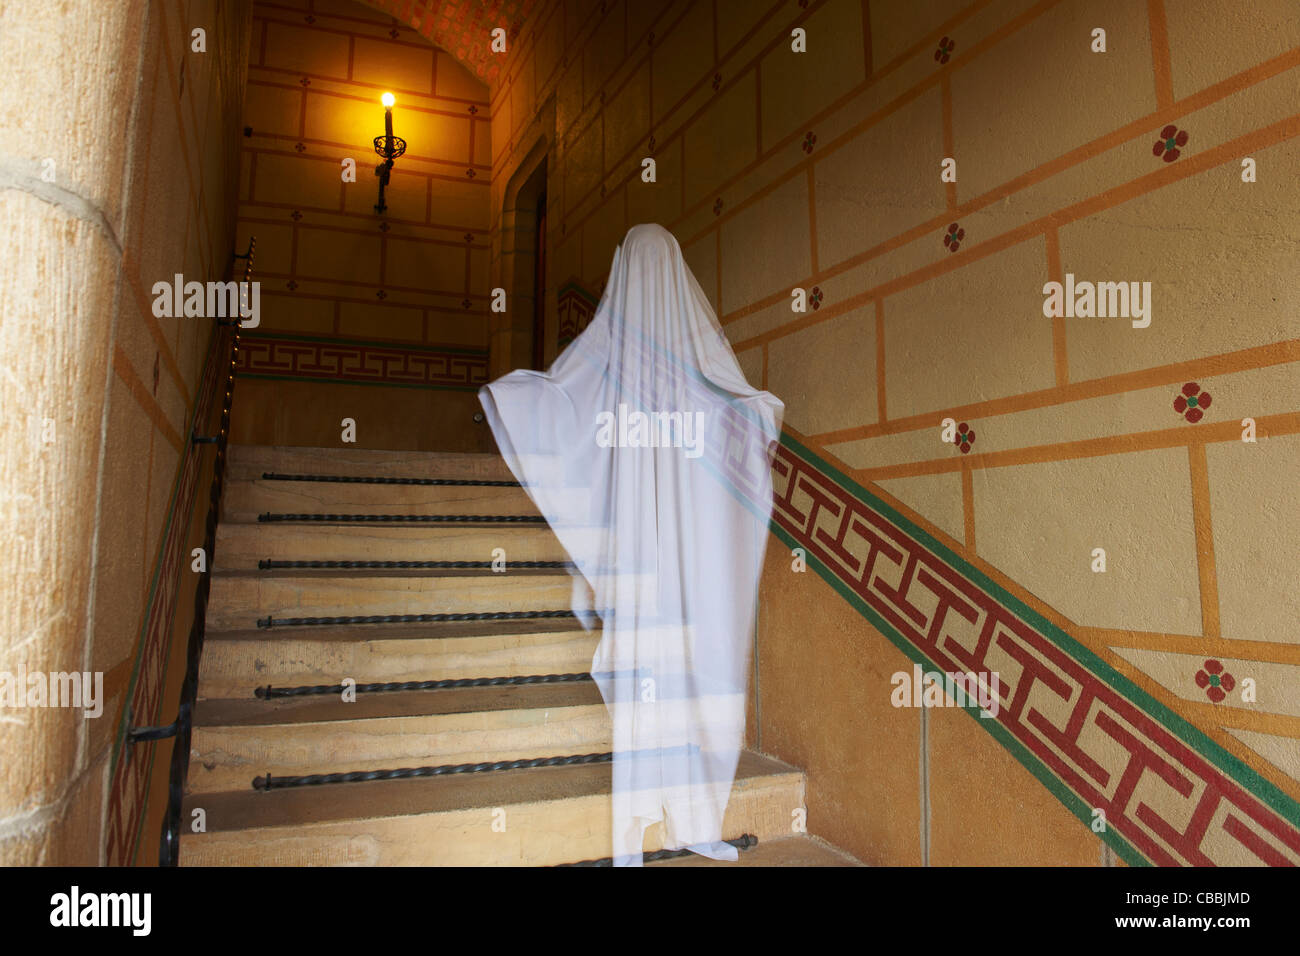 Ghost floating on ornate stairs - Stock Image